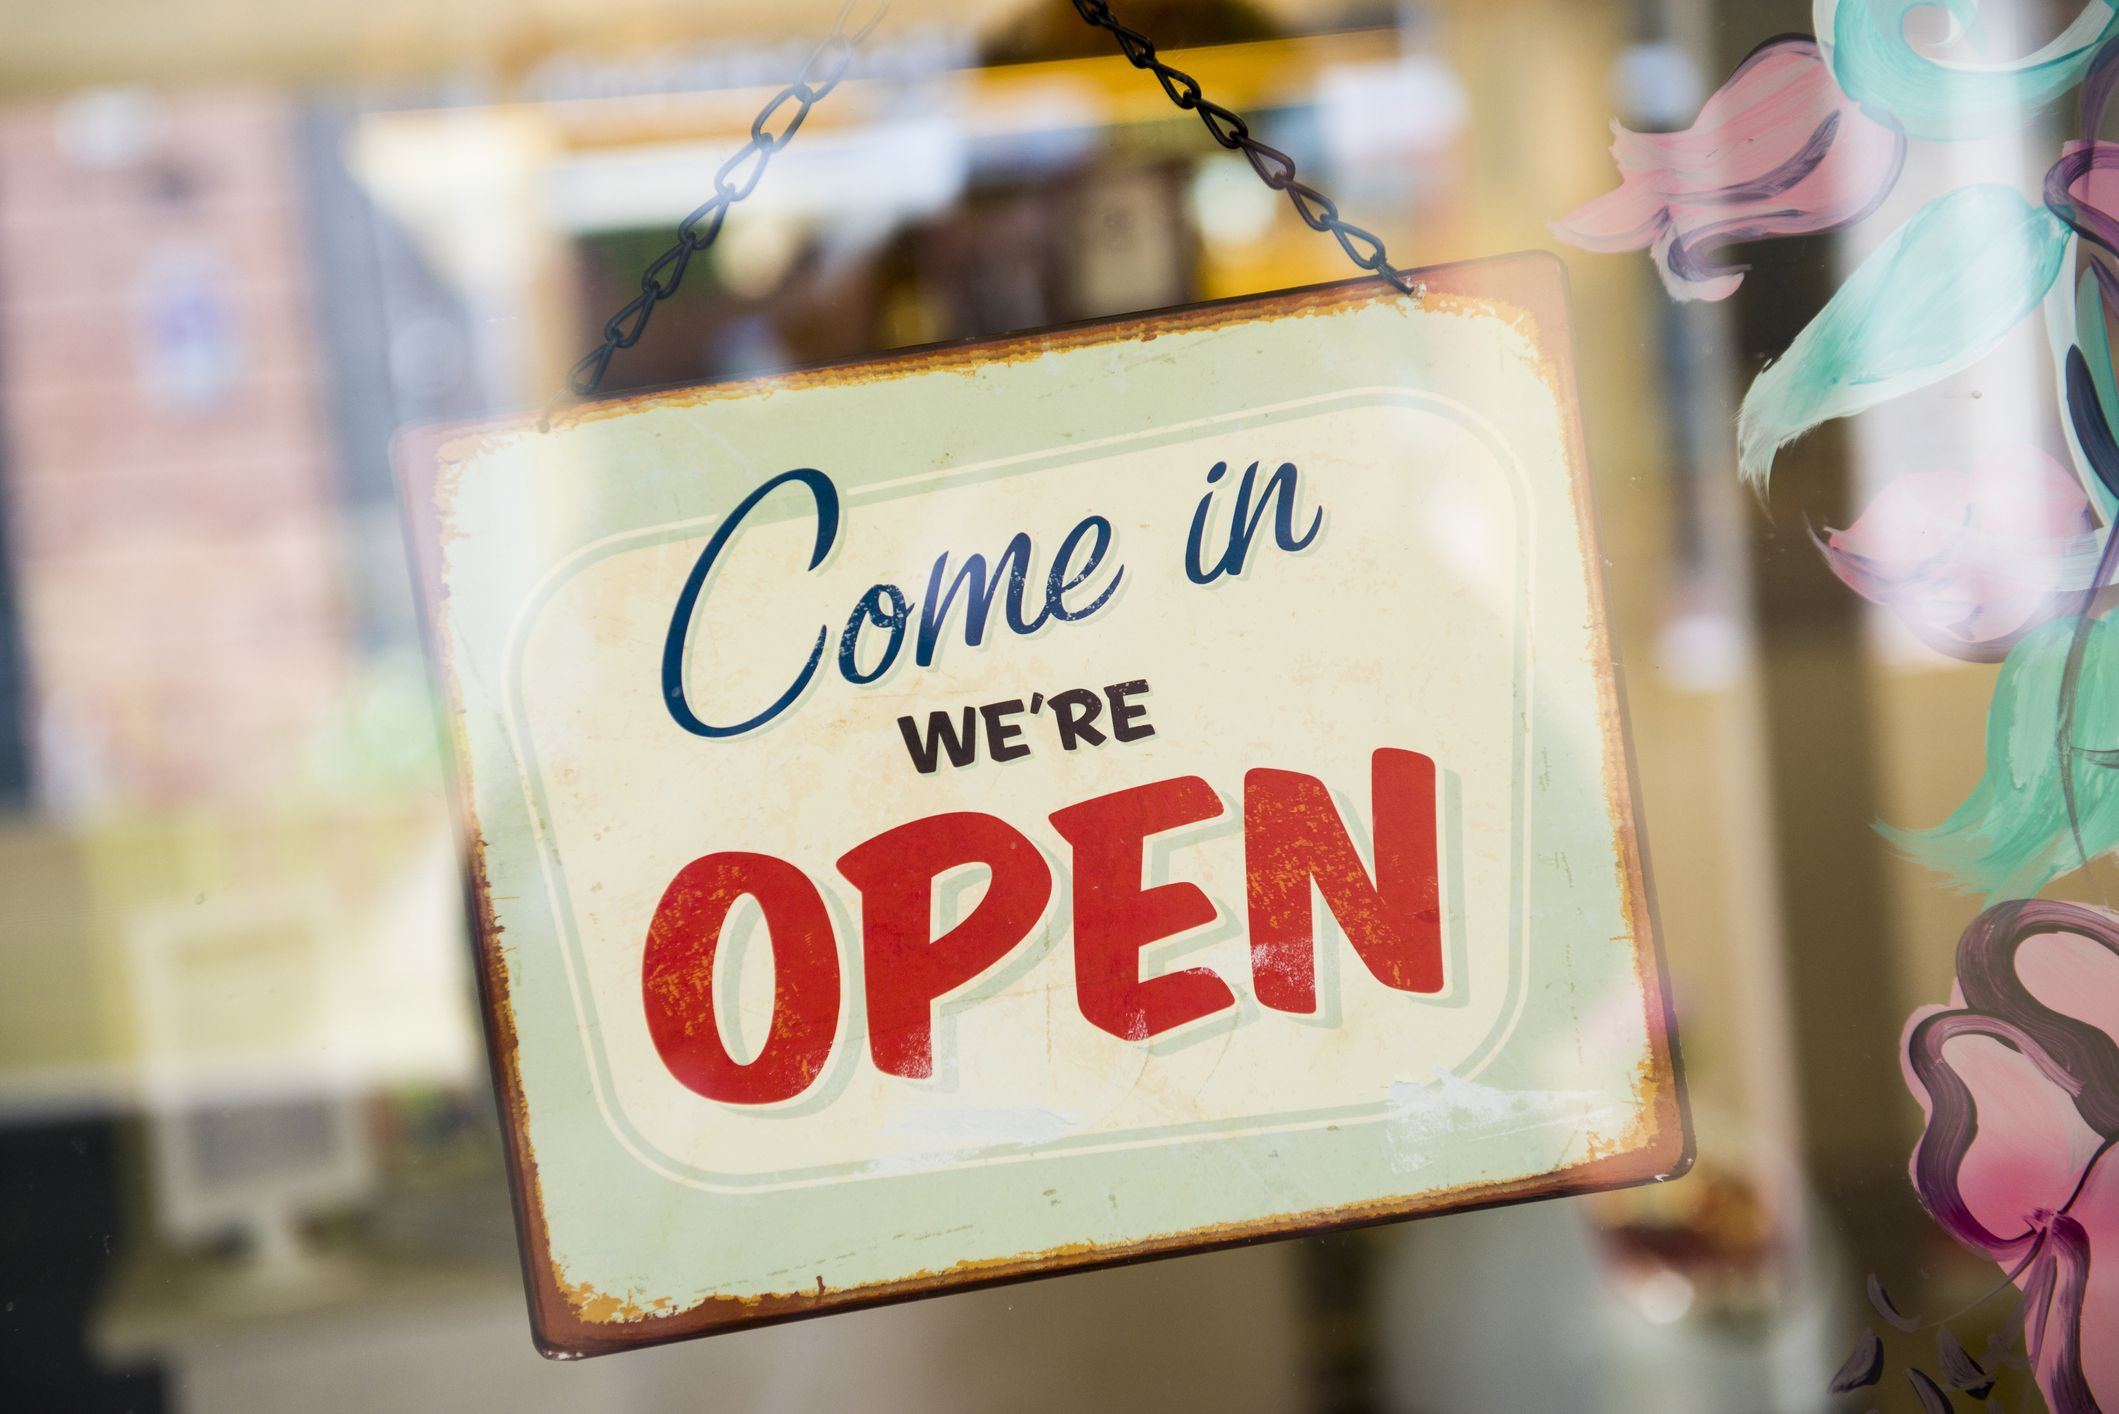 business-opening-with-open-sign-royalty-free-image-1573142427